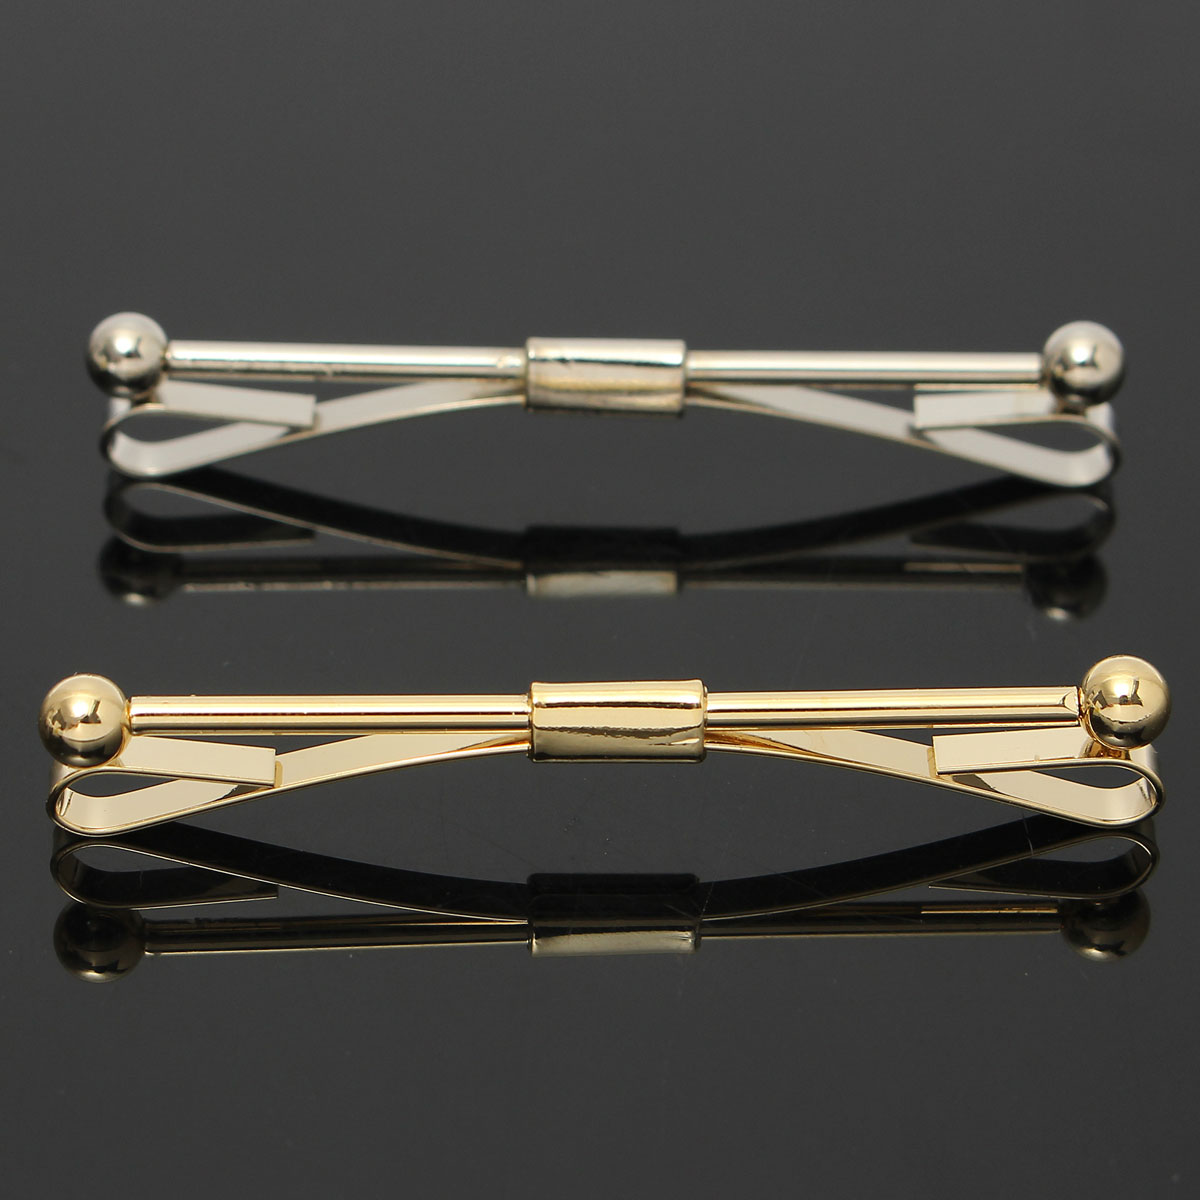 Men Silver Gold Necktie Tie Clip Bar Clasp Cravat Pin Skinny Collar Brooch Without Chain